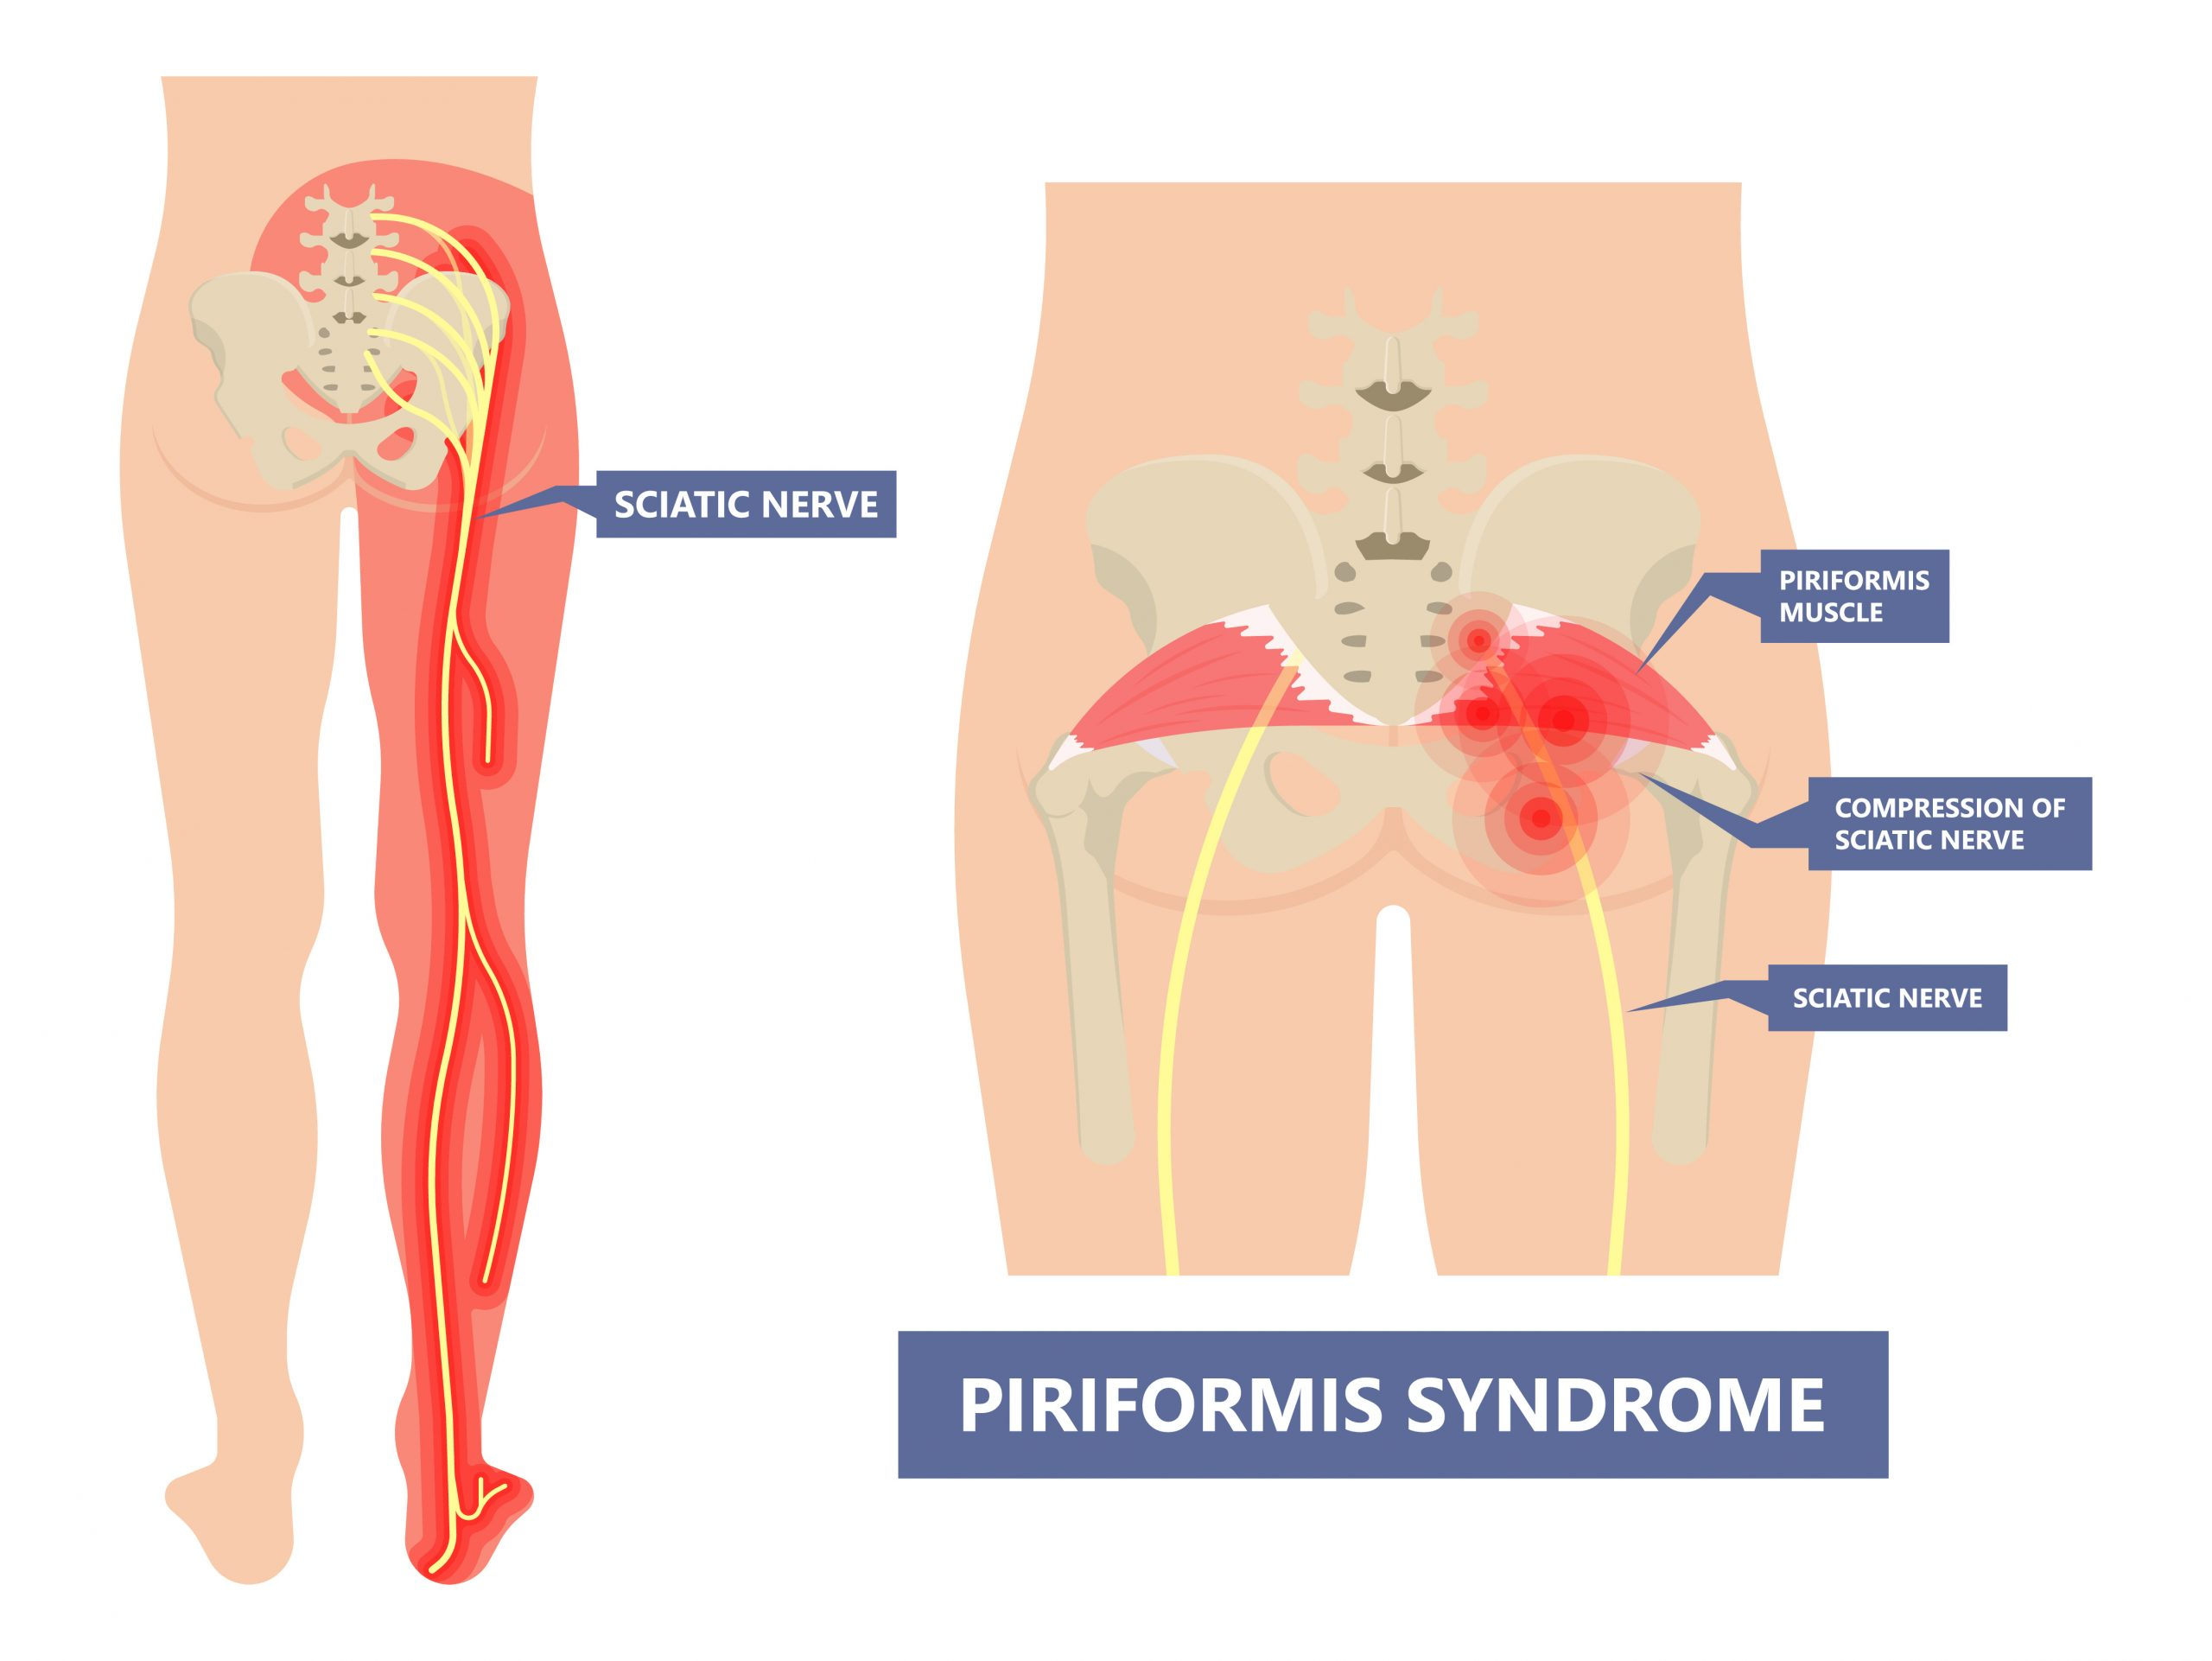 Piriformis syndrome pain and numbness in buttocks and down the back of leg